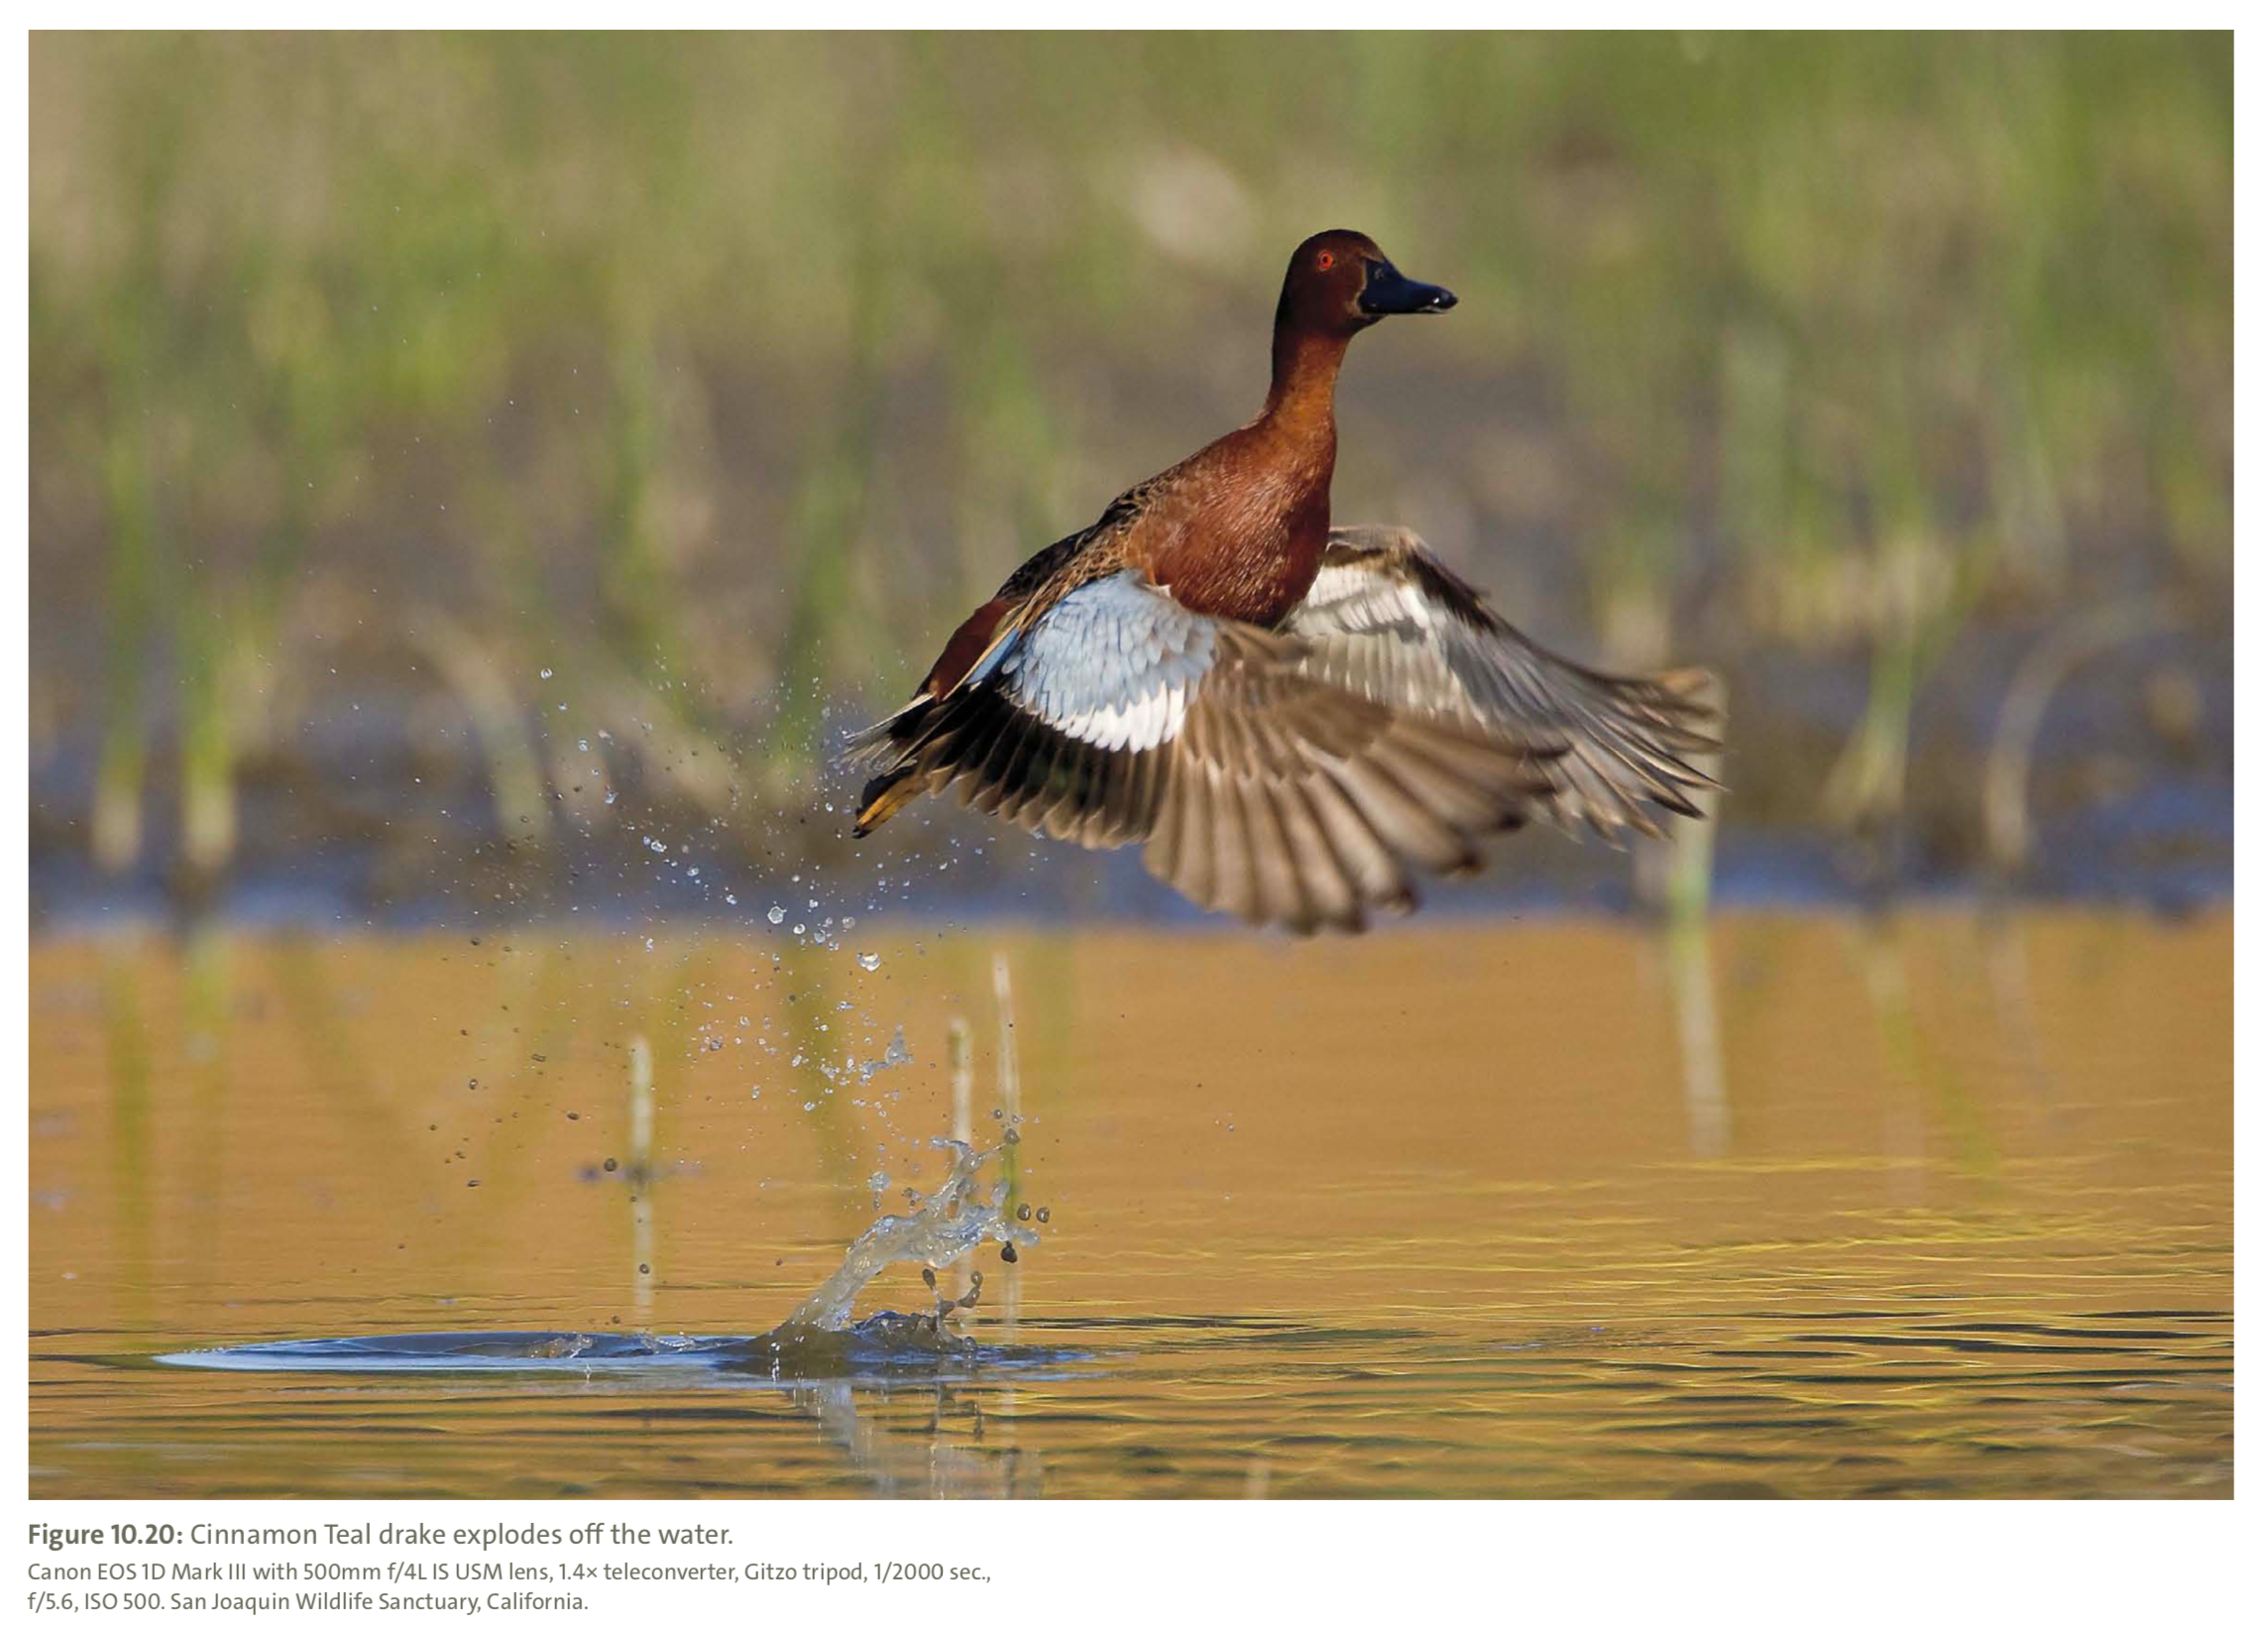 Figure 10.20 from Mastering Bird Photography  Photo: Marie Read